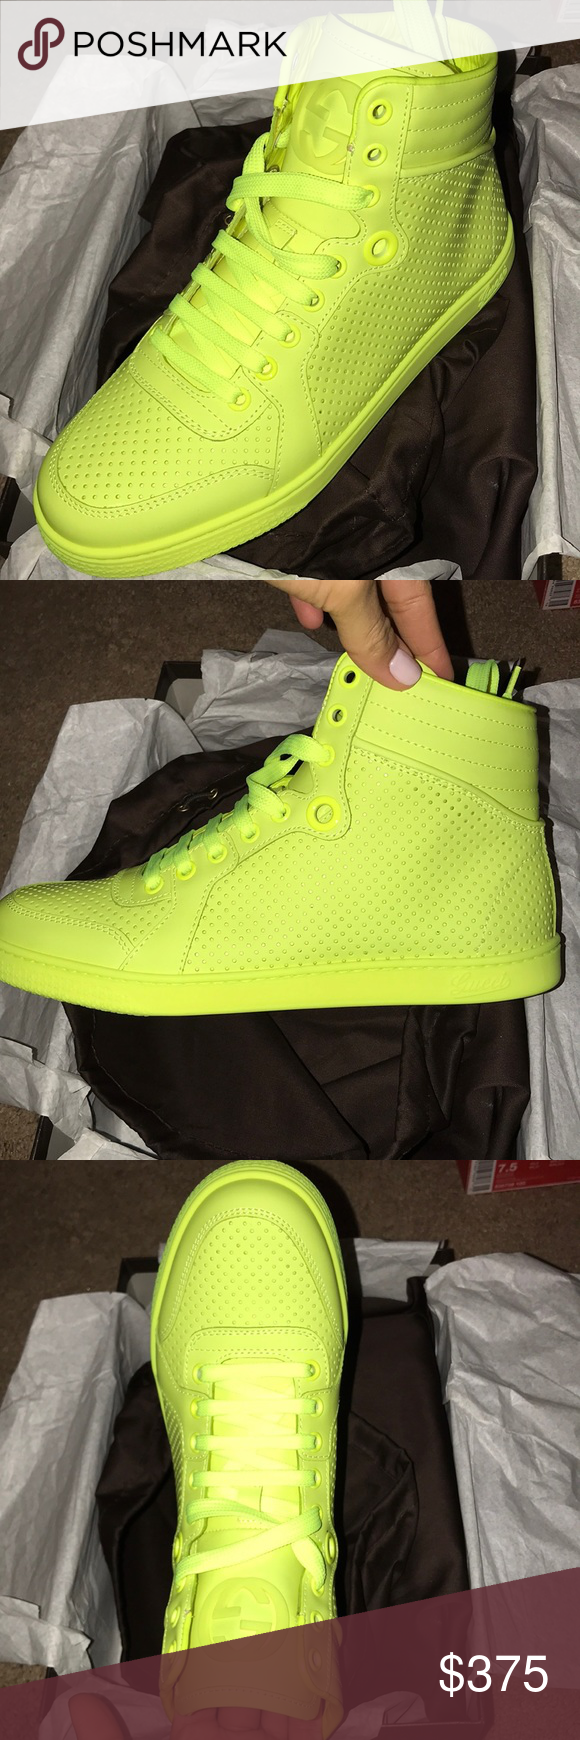 ab53ddd88 Gucci neon matte high top sneakers Gucci neon yellow/green sneakers in a  matte finish Perforated leather Brand new in box Never worn Color : fluo  matt Gucci ...